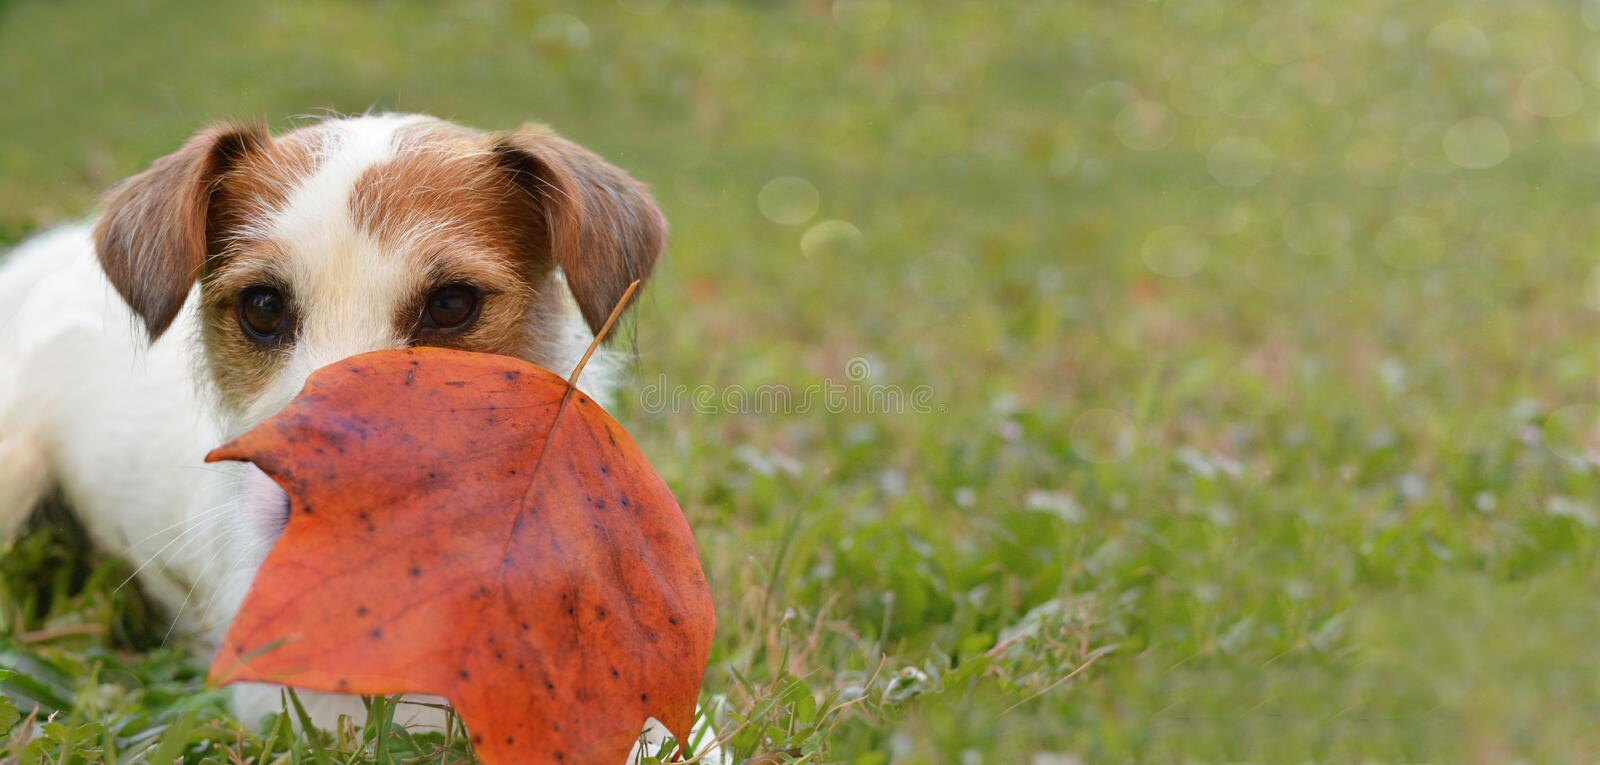 PORTRAIT OF A HEARTWARMING AND ADORABLE JACK RUSSELL DOG PLAYIN royalty free stock photo